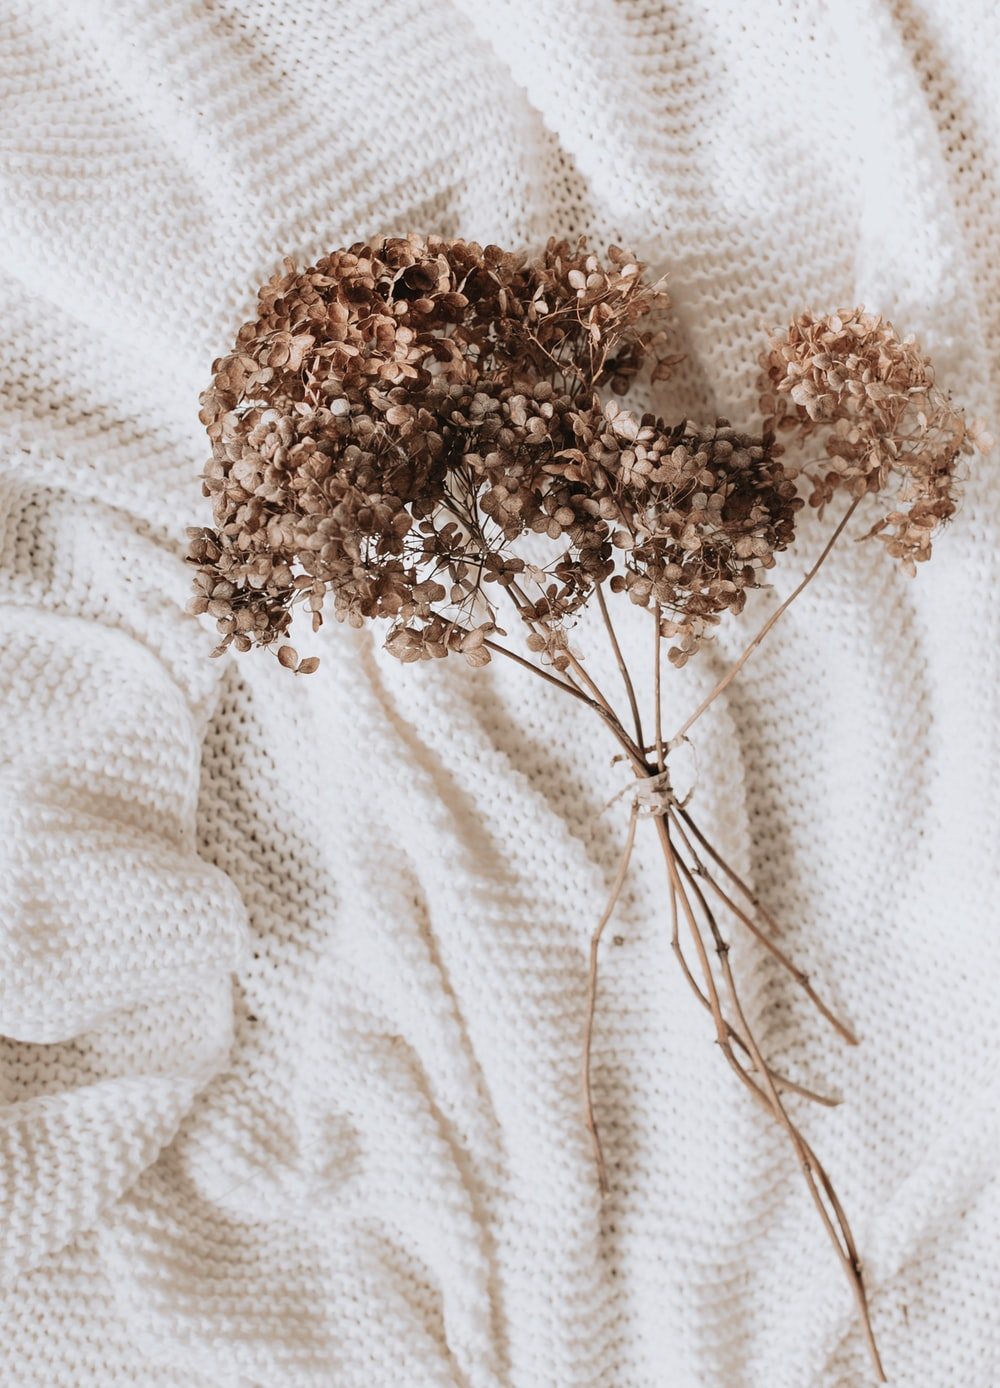 brown flowers on white textile